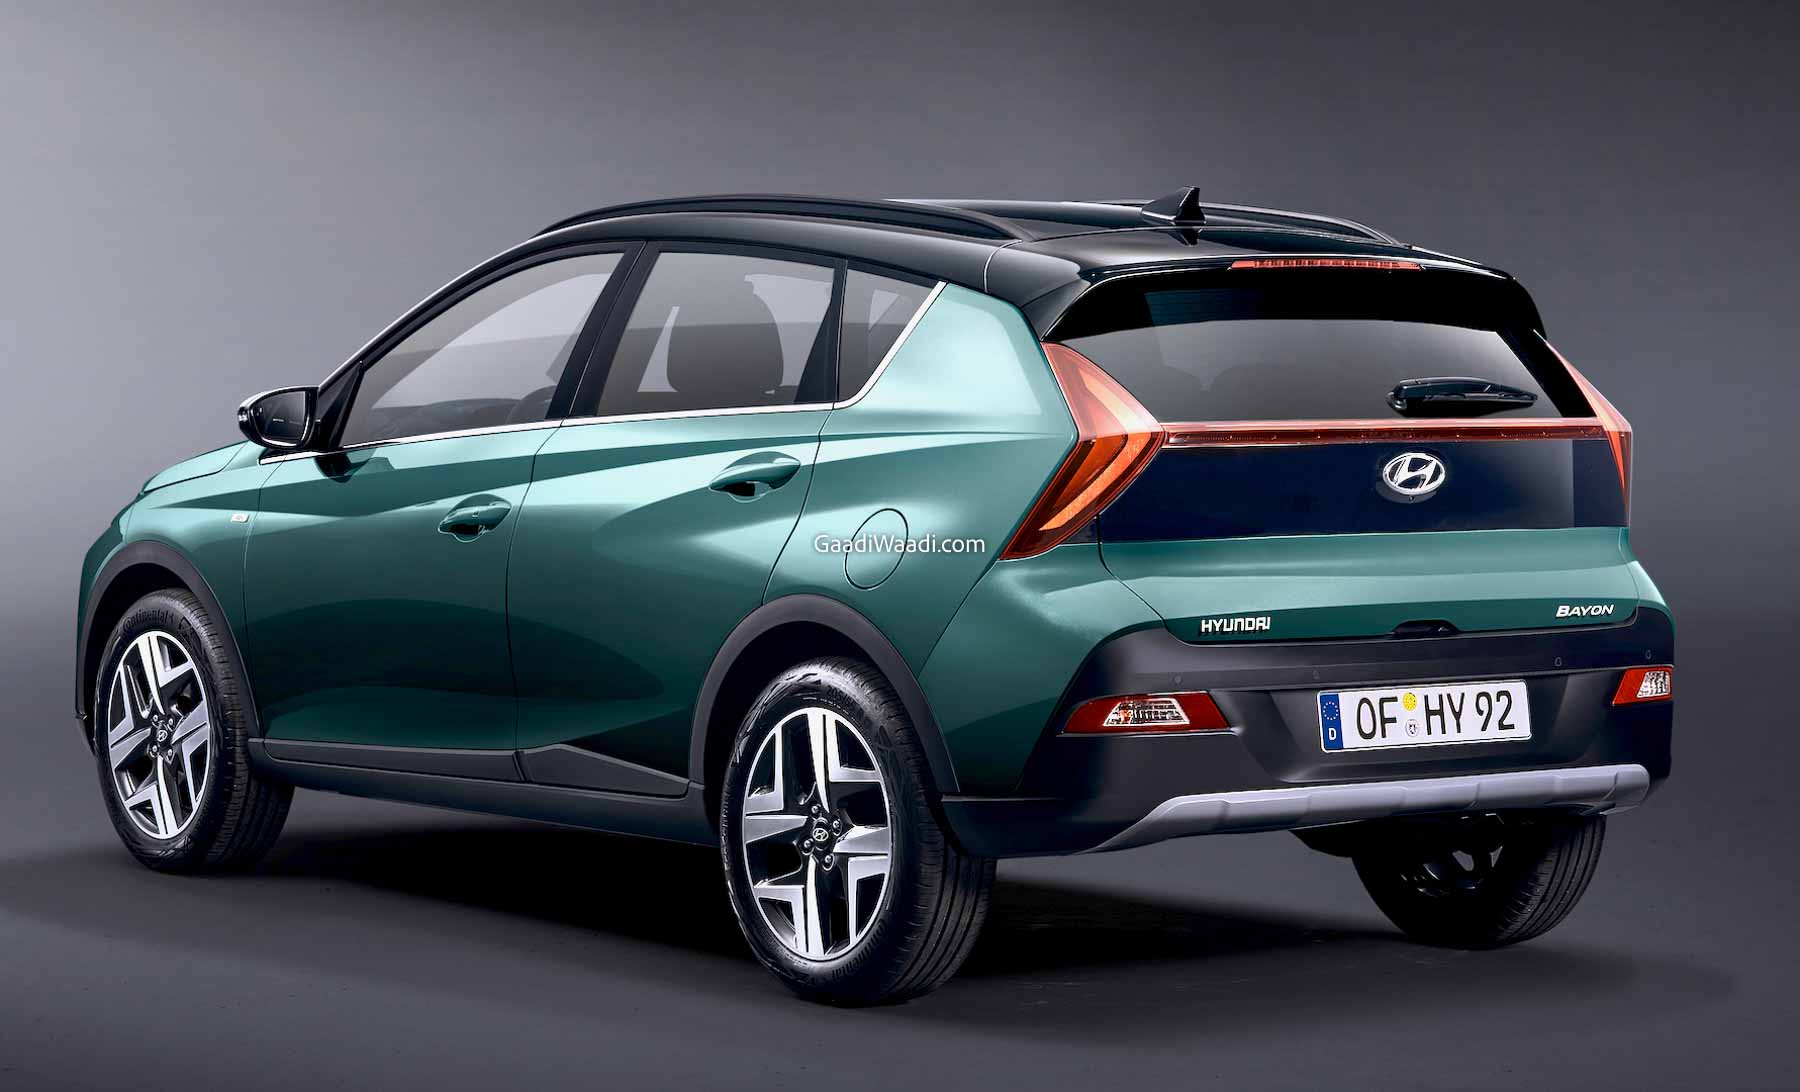 Hyundai Bayon Compact SUV Revealed With Aggressive Styling - GaadiWaadi.com